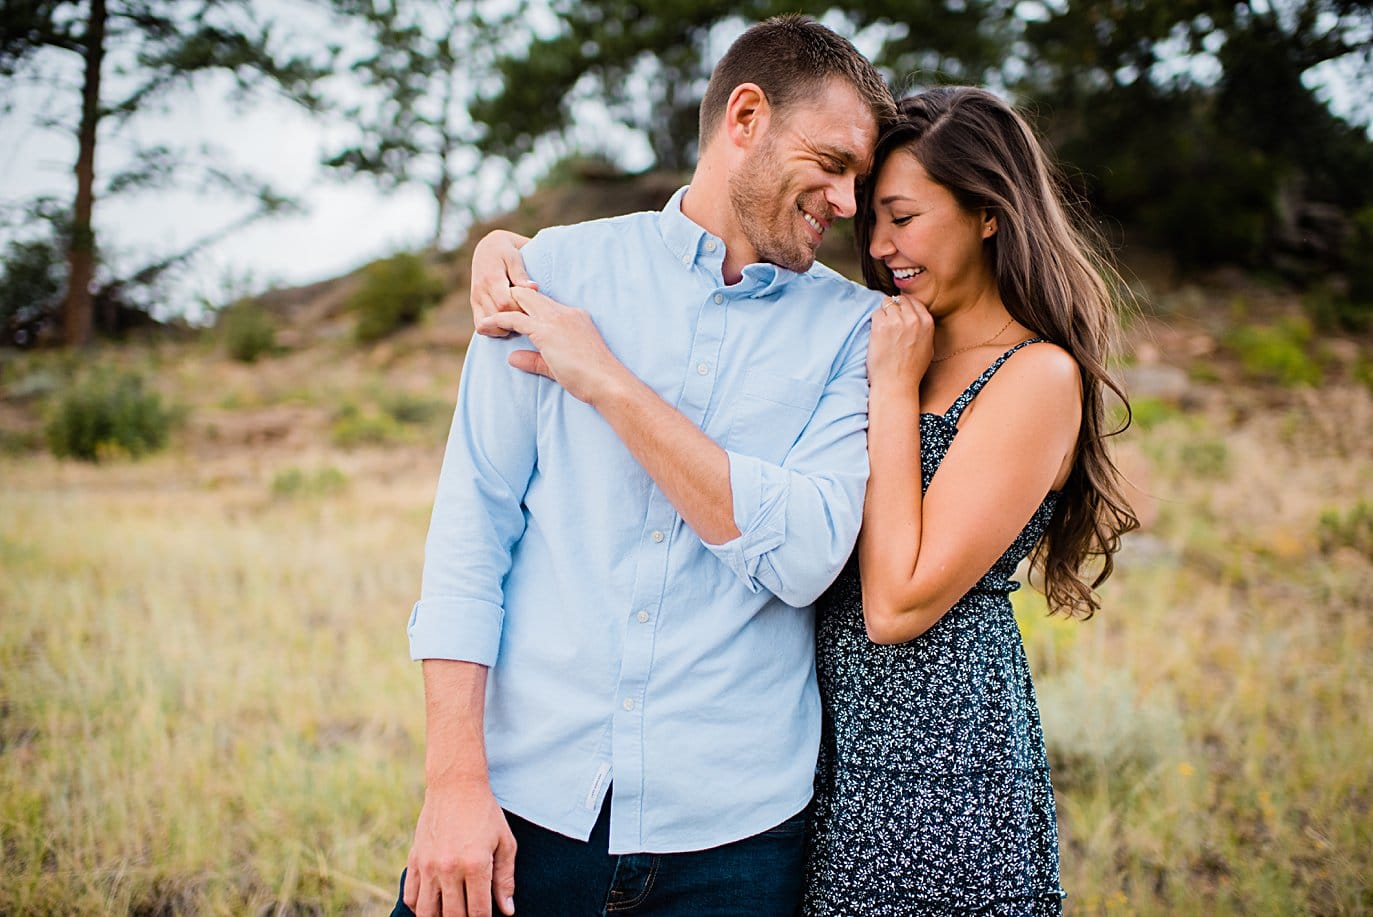 intimate moment during summer engagement session at 3M Curve in Rocky Mountain National Park by Estes Park engagement photographer Jennie Crate